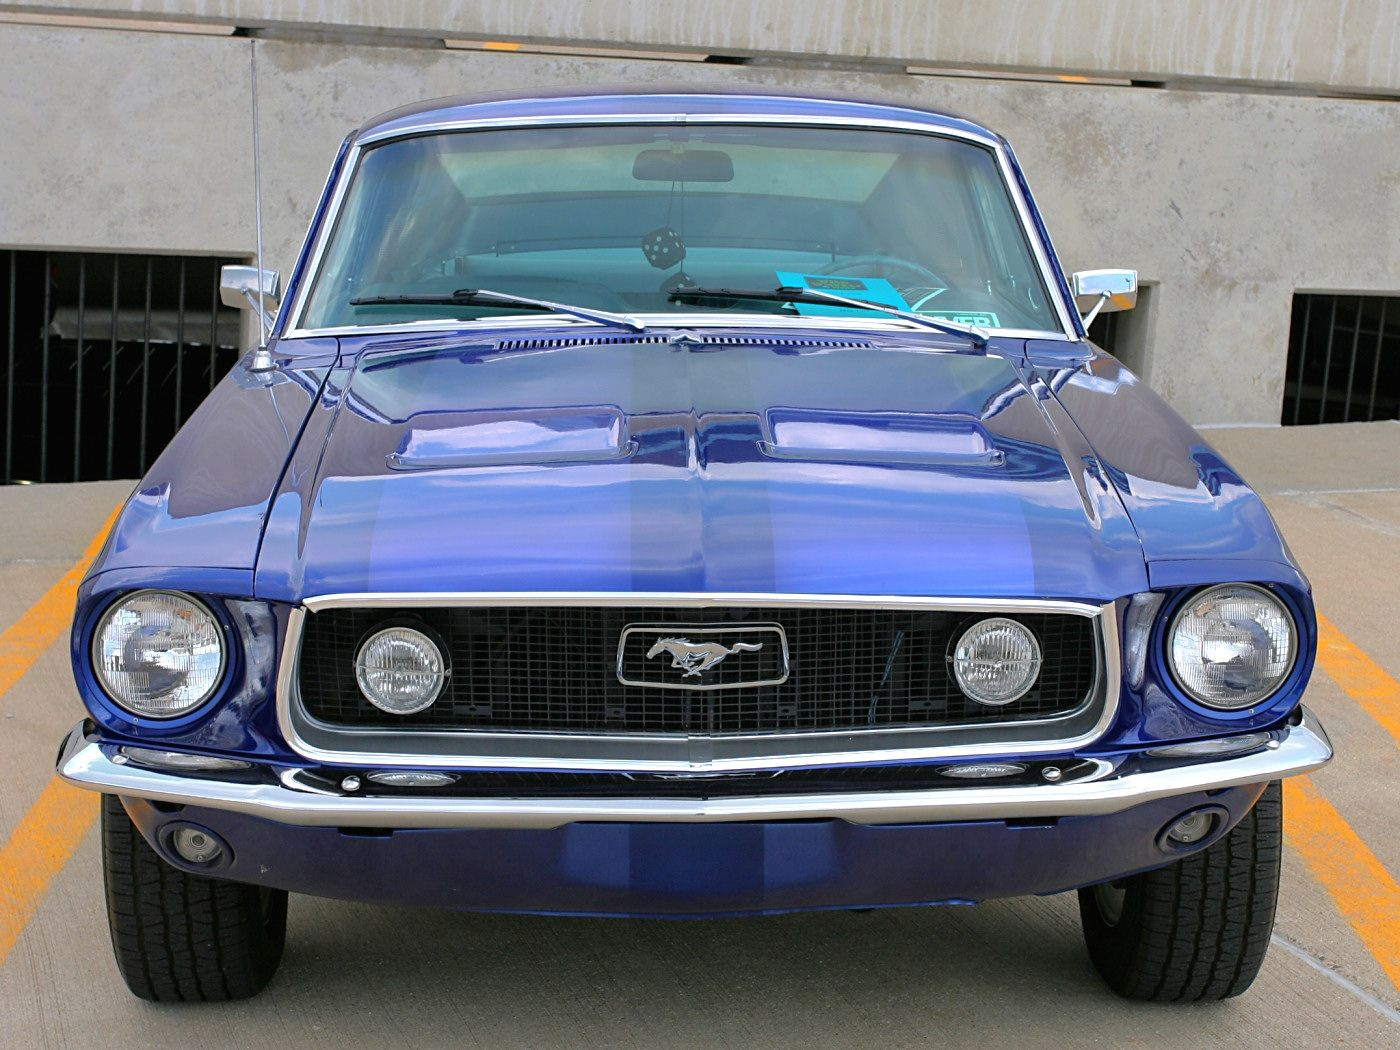 Ford Mustang Gt Fasback W Custom Wheels Acapulco Blue Poly Fv  Ww Wd Dctc